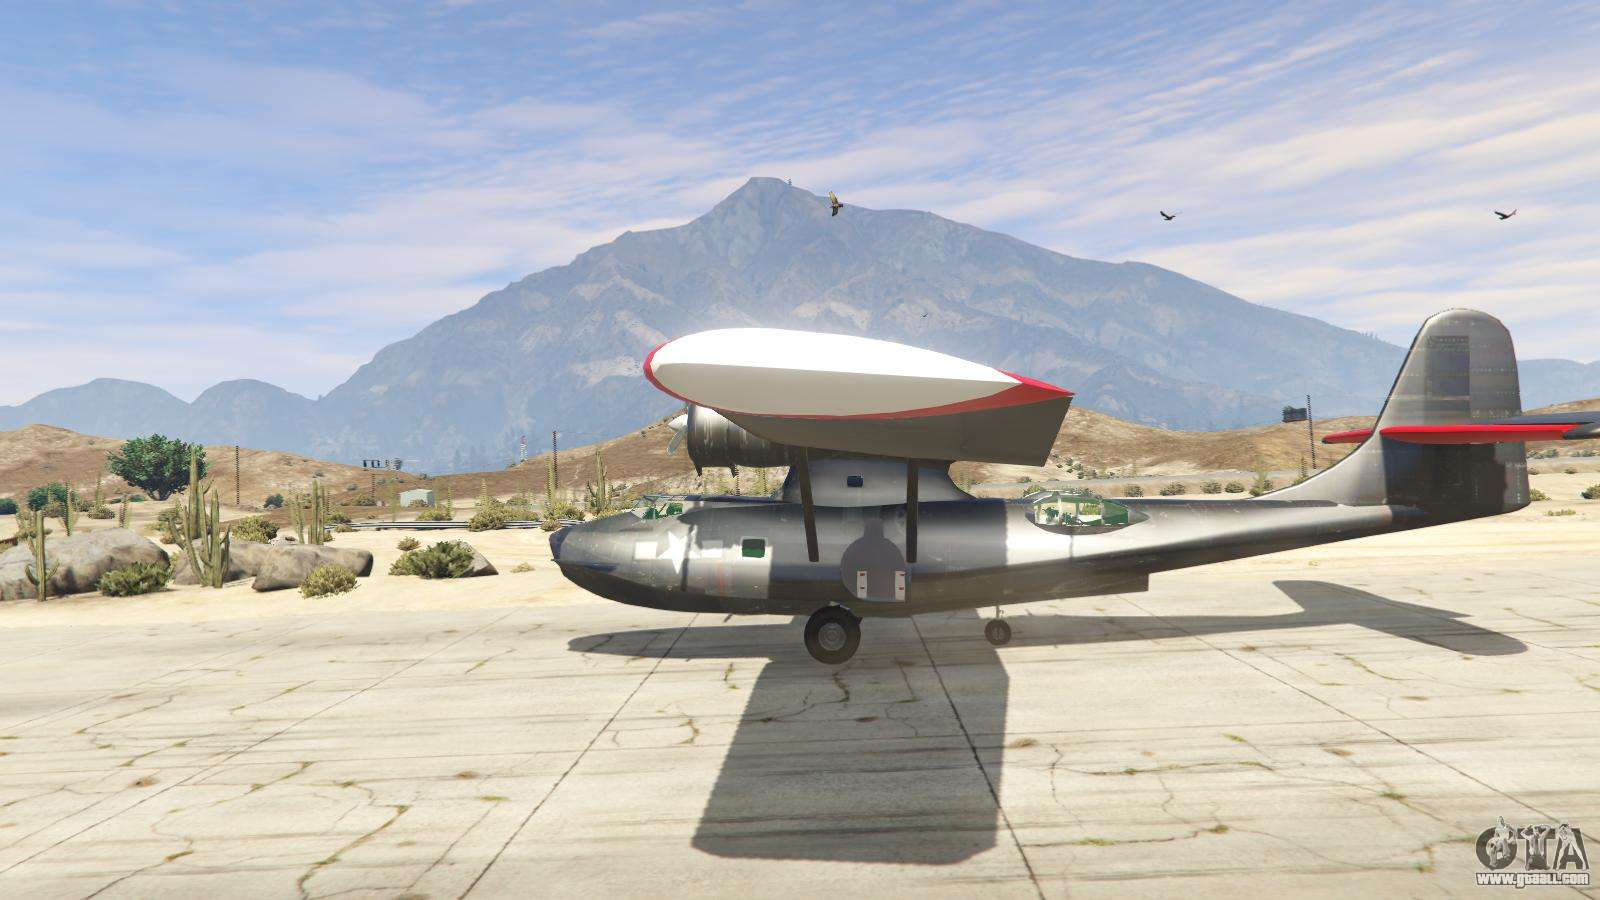 Pby 5 catalina for gta 5 for The catalina